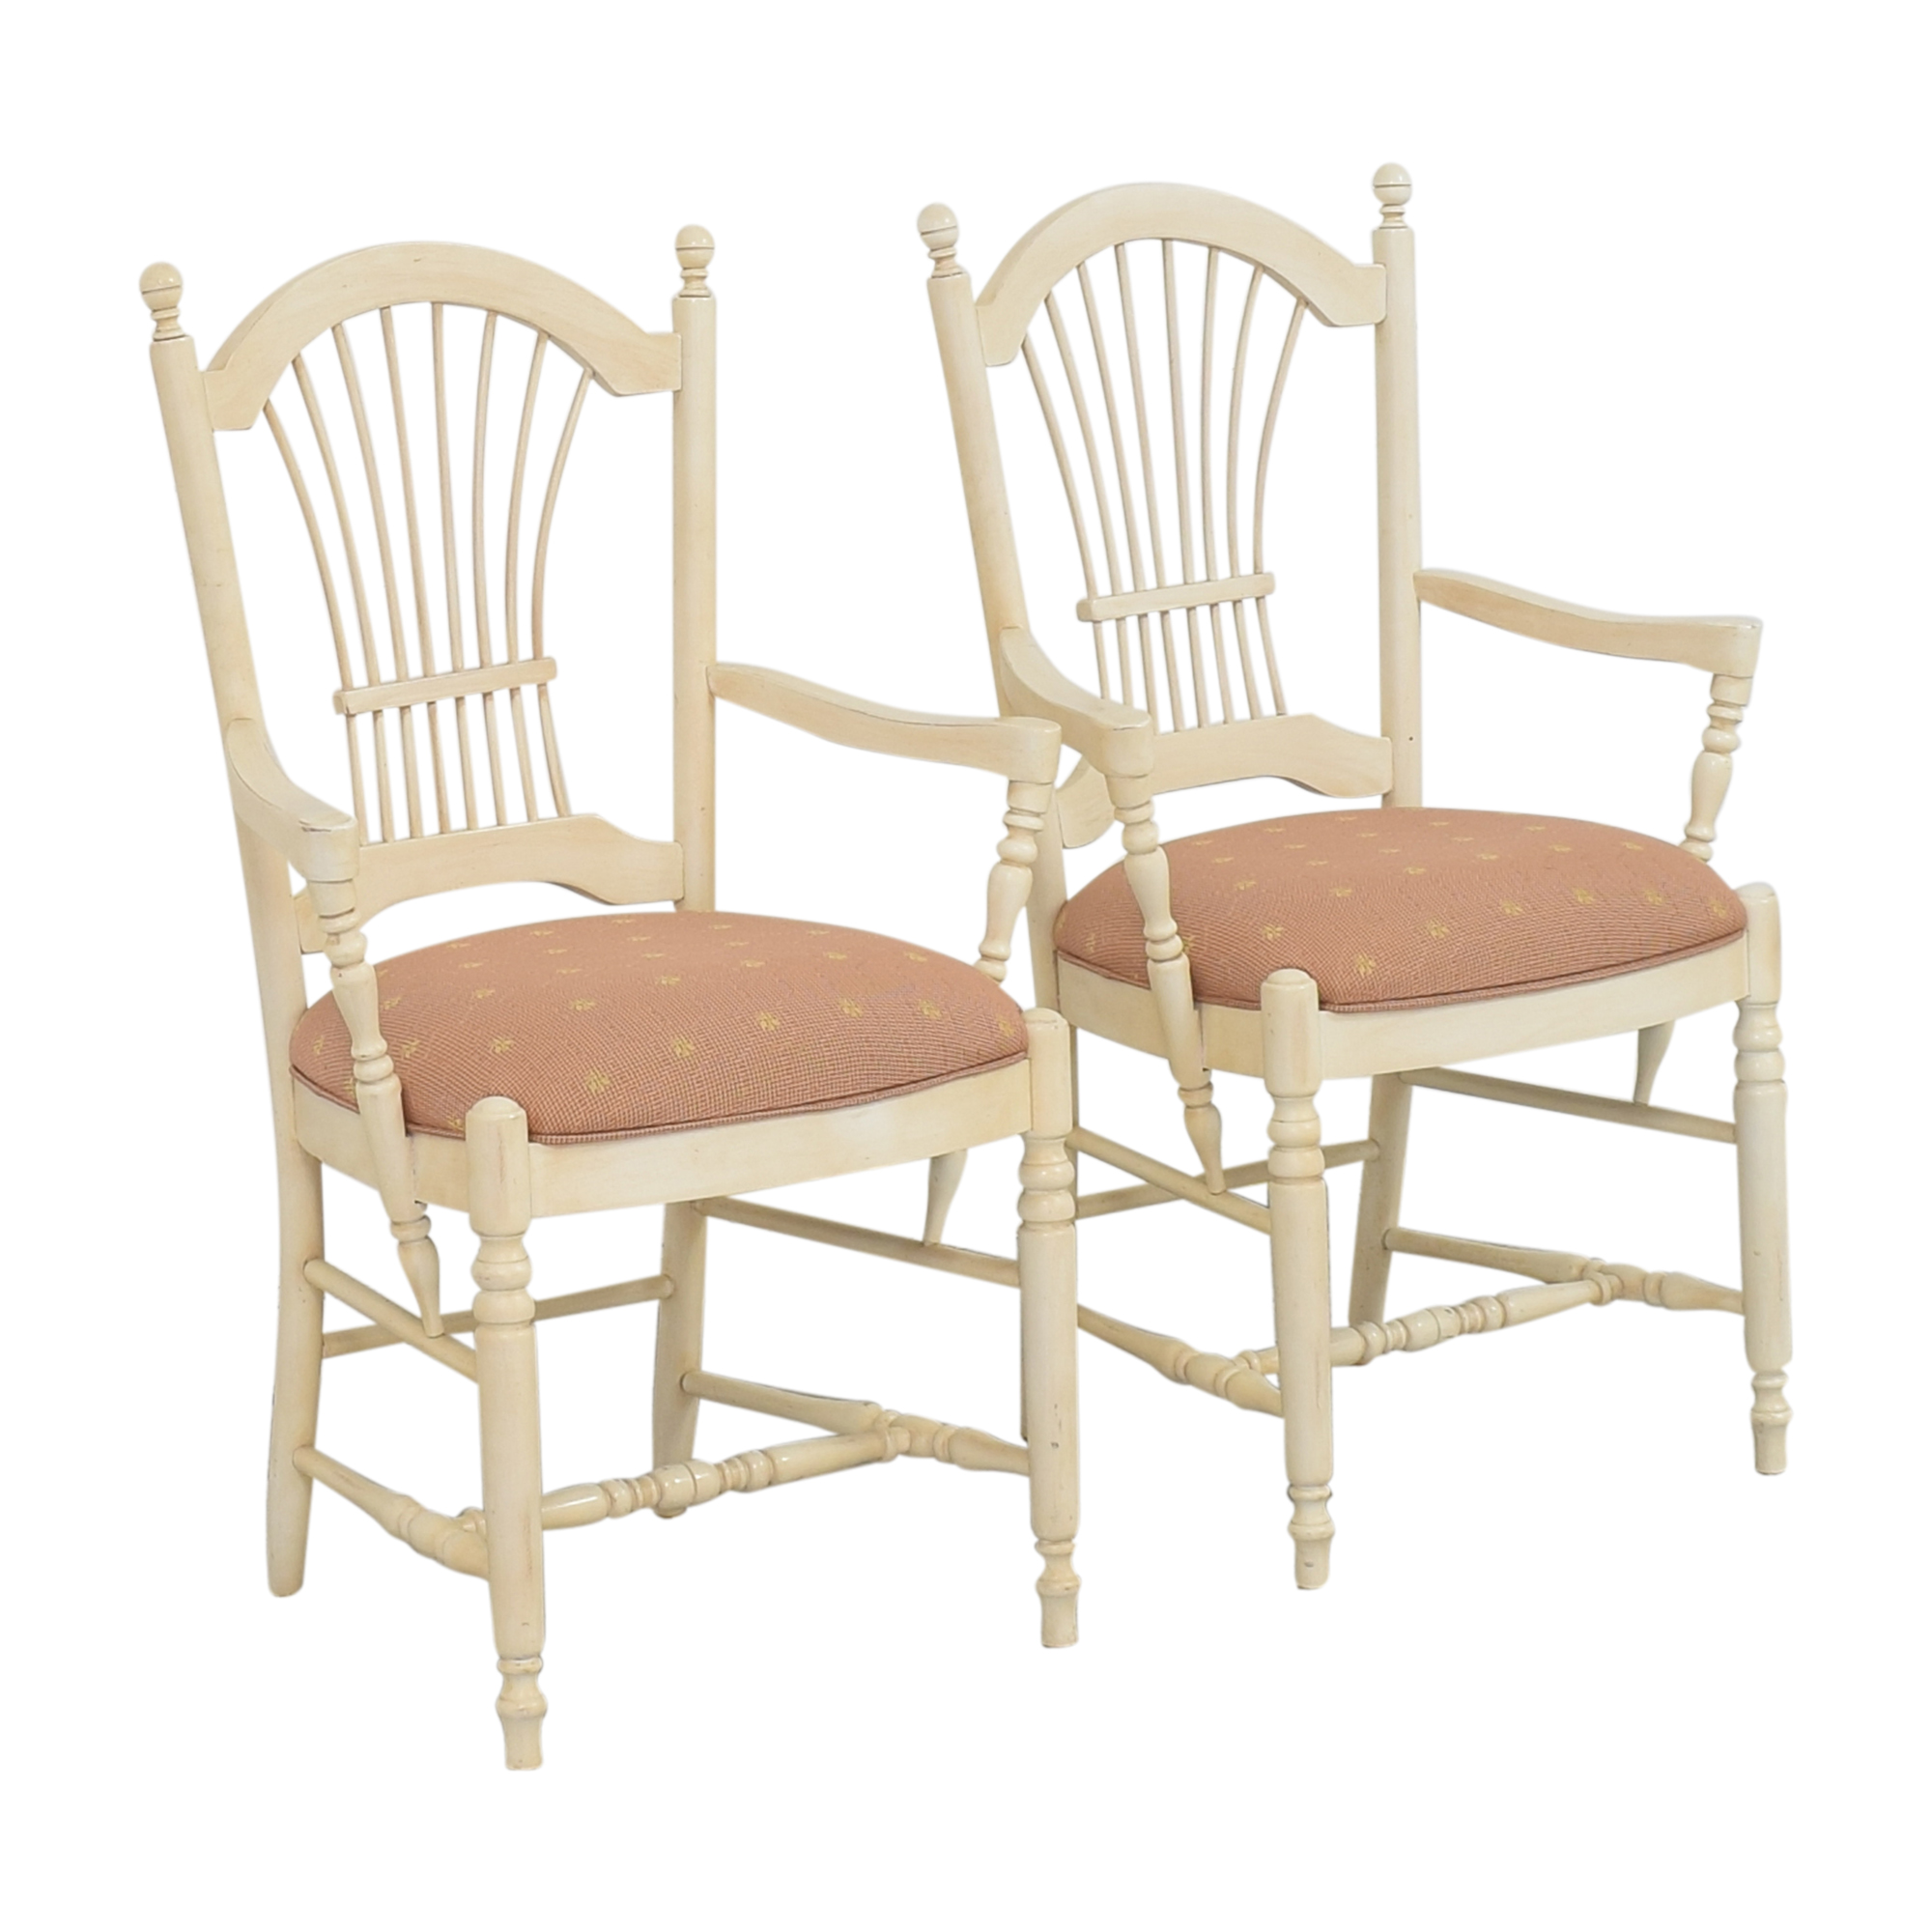 Ethan Allen Country French Dining Arm Chairs / Chairs